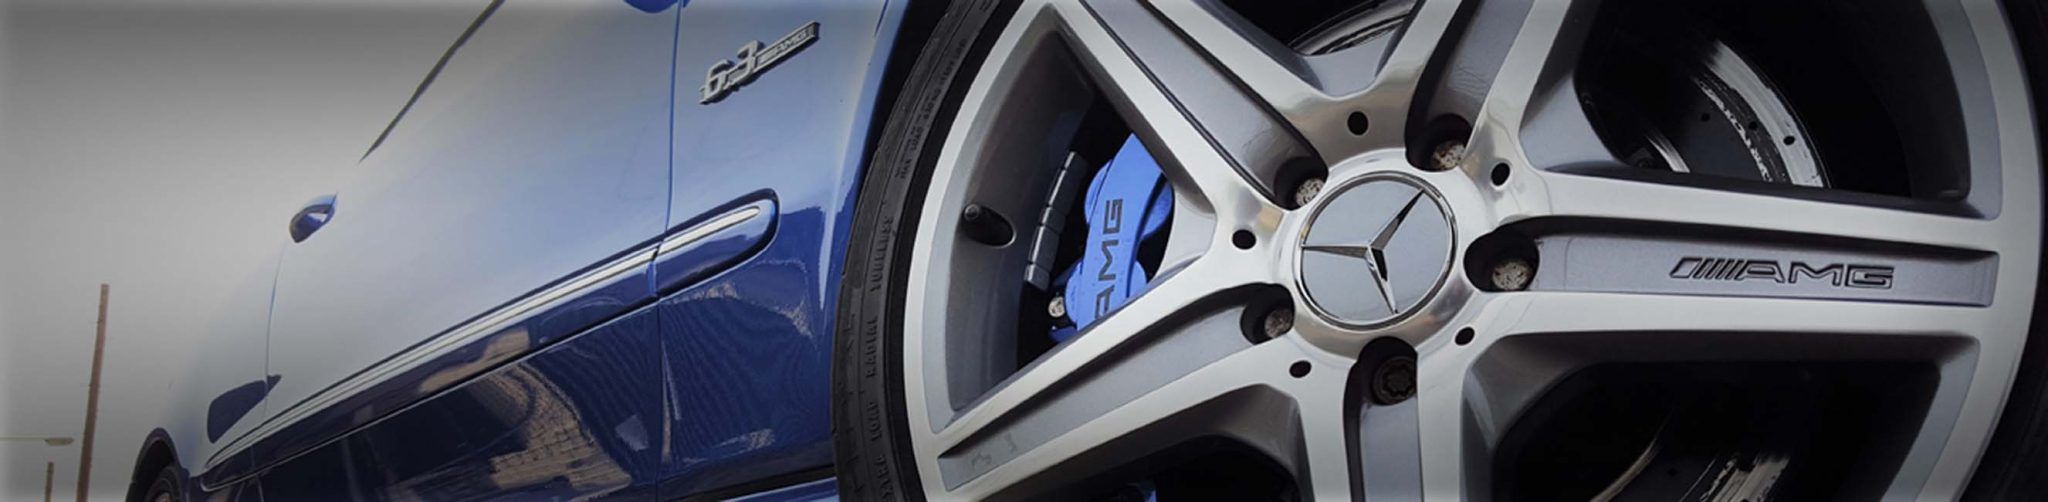 brake calipers painted blue with stenciling